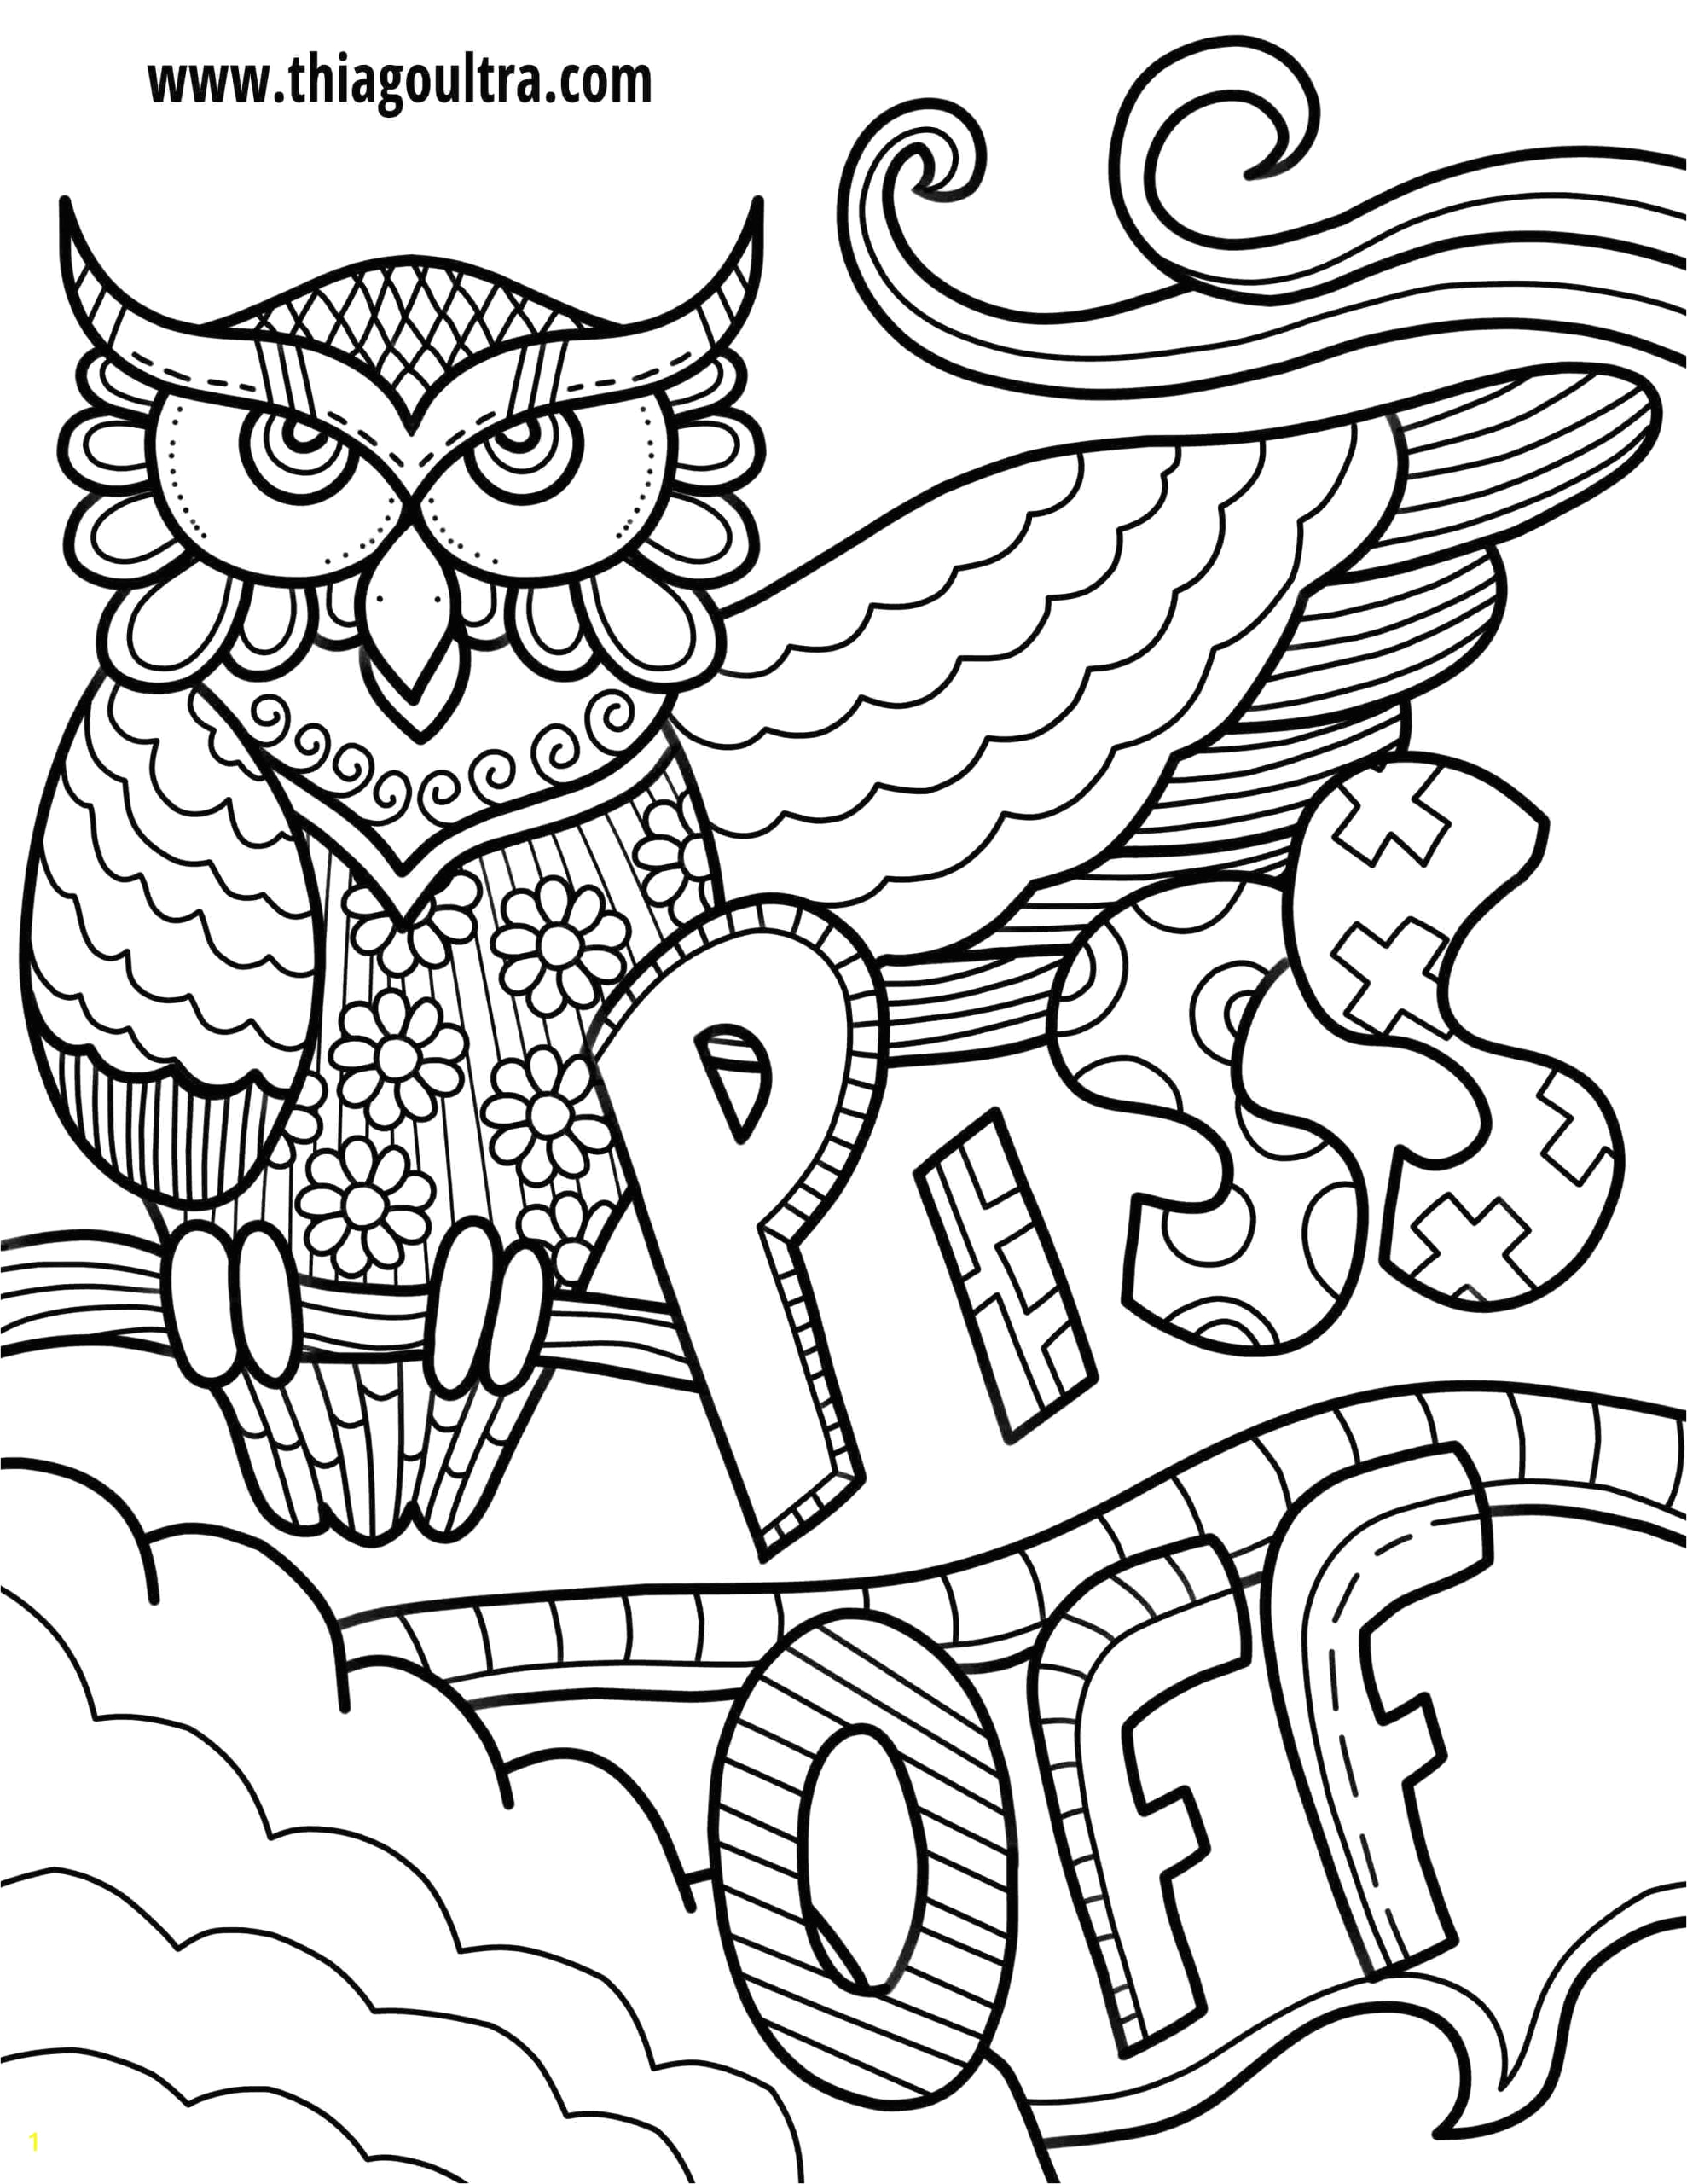 Free Printable Swear Word Coloring Pages Pdf Free Printable Coloring Pages for Adults Ly Swear Words